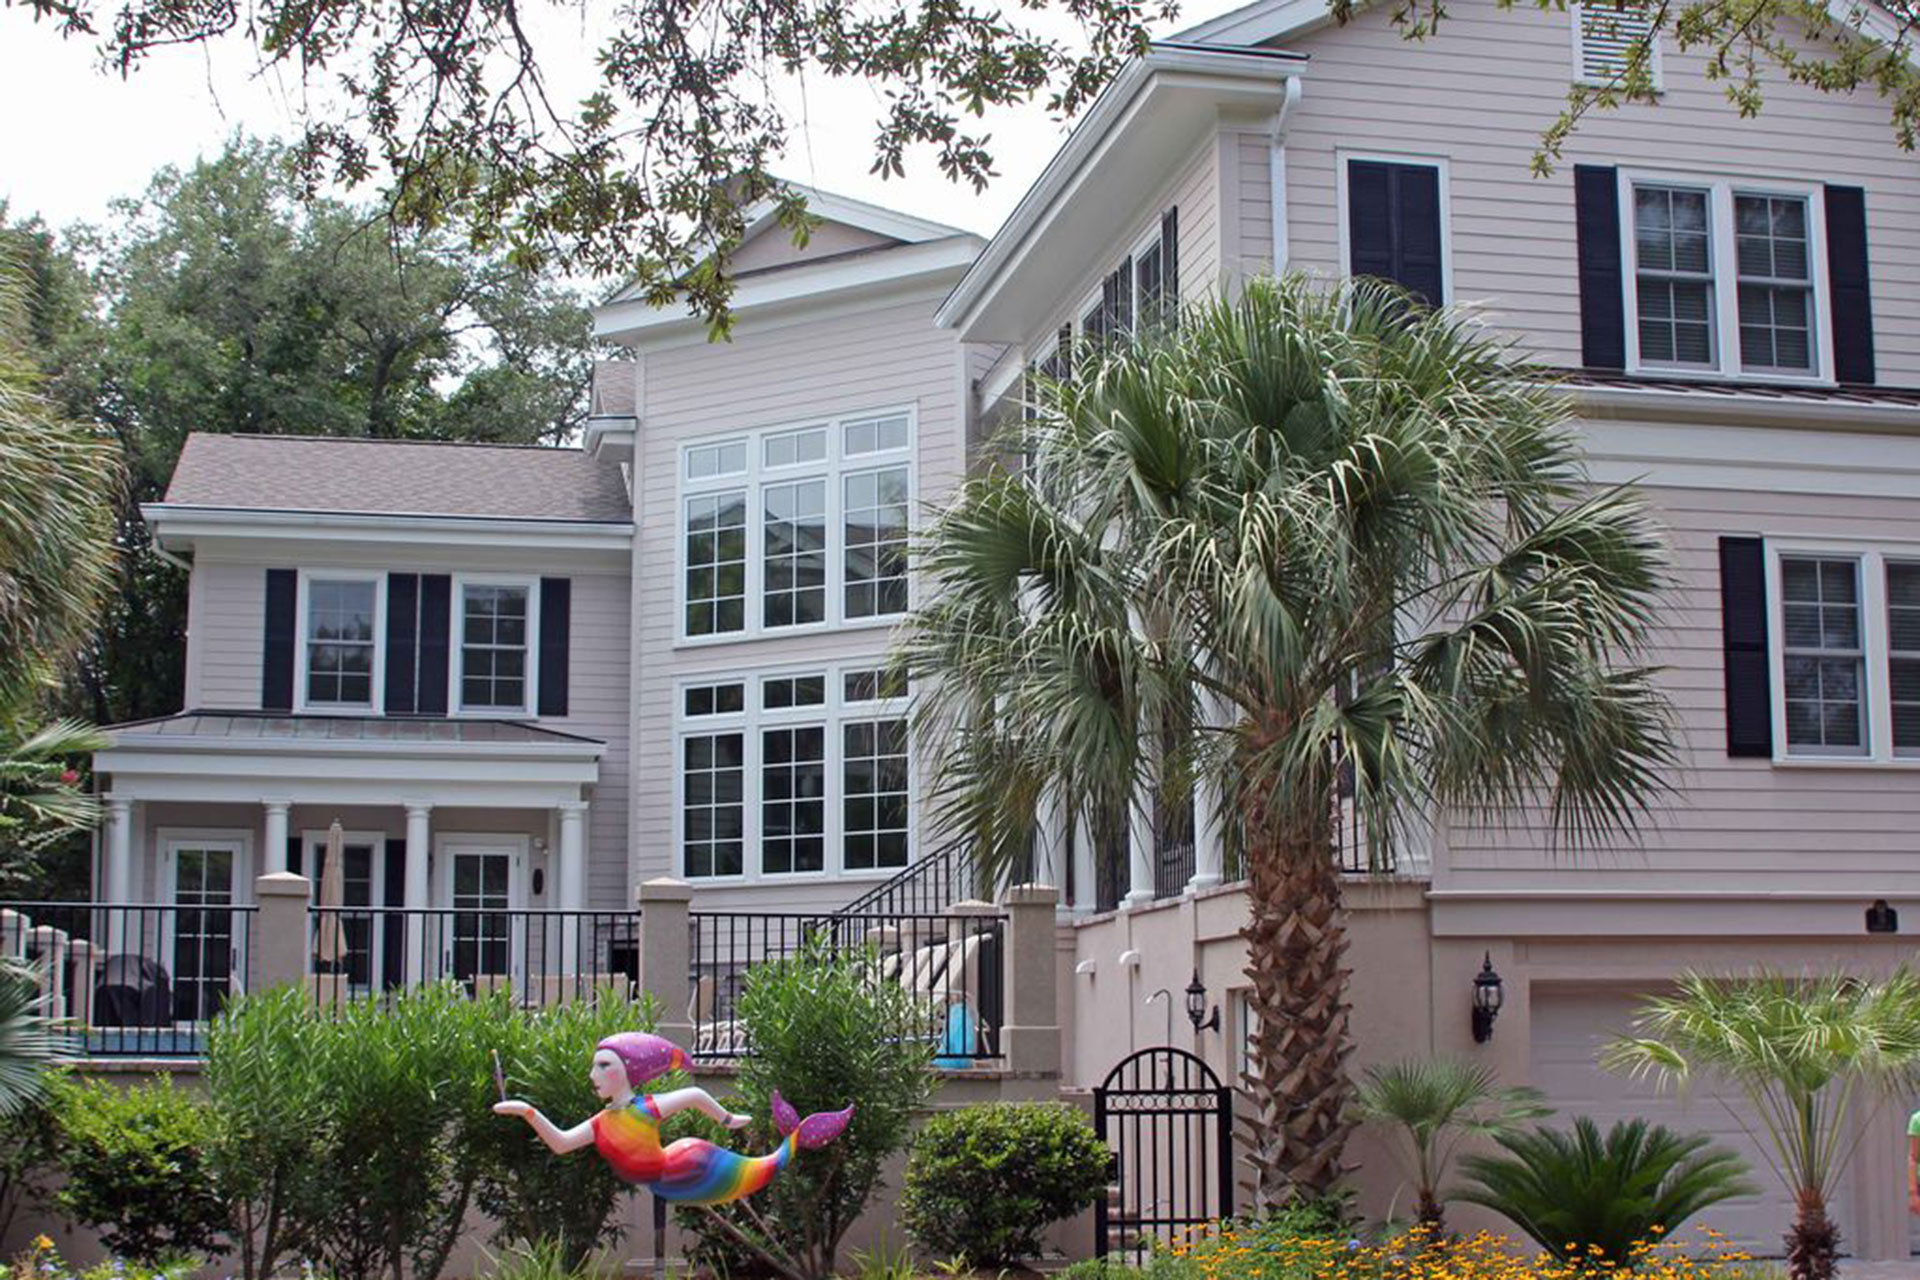 Castle by the Sea Vacation Rental in Hilton Head, South Carolina; Courtesy of VacationRentals.com/HomeAway